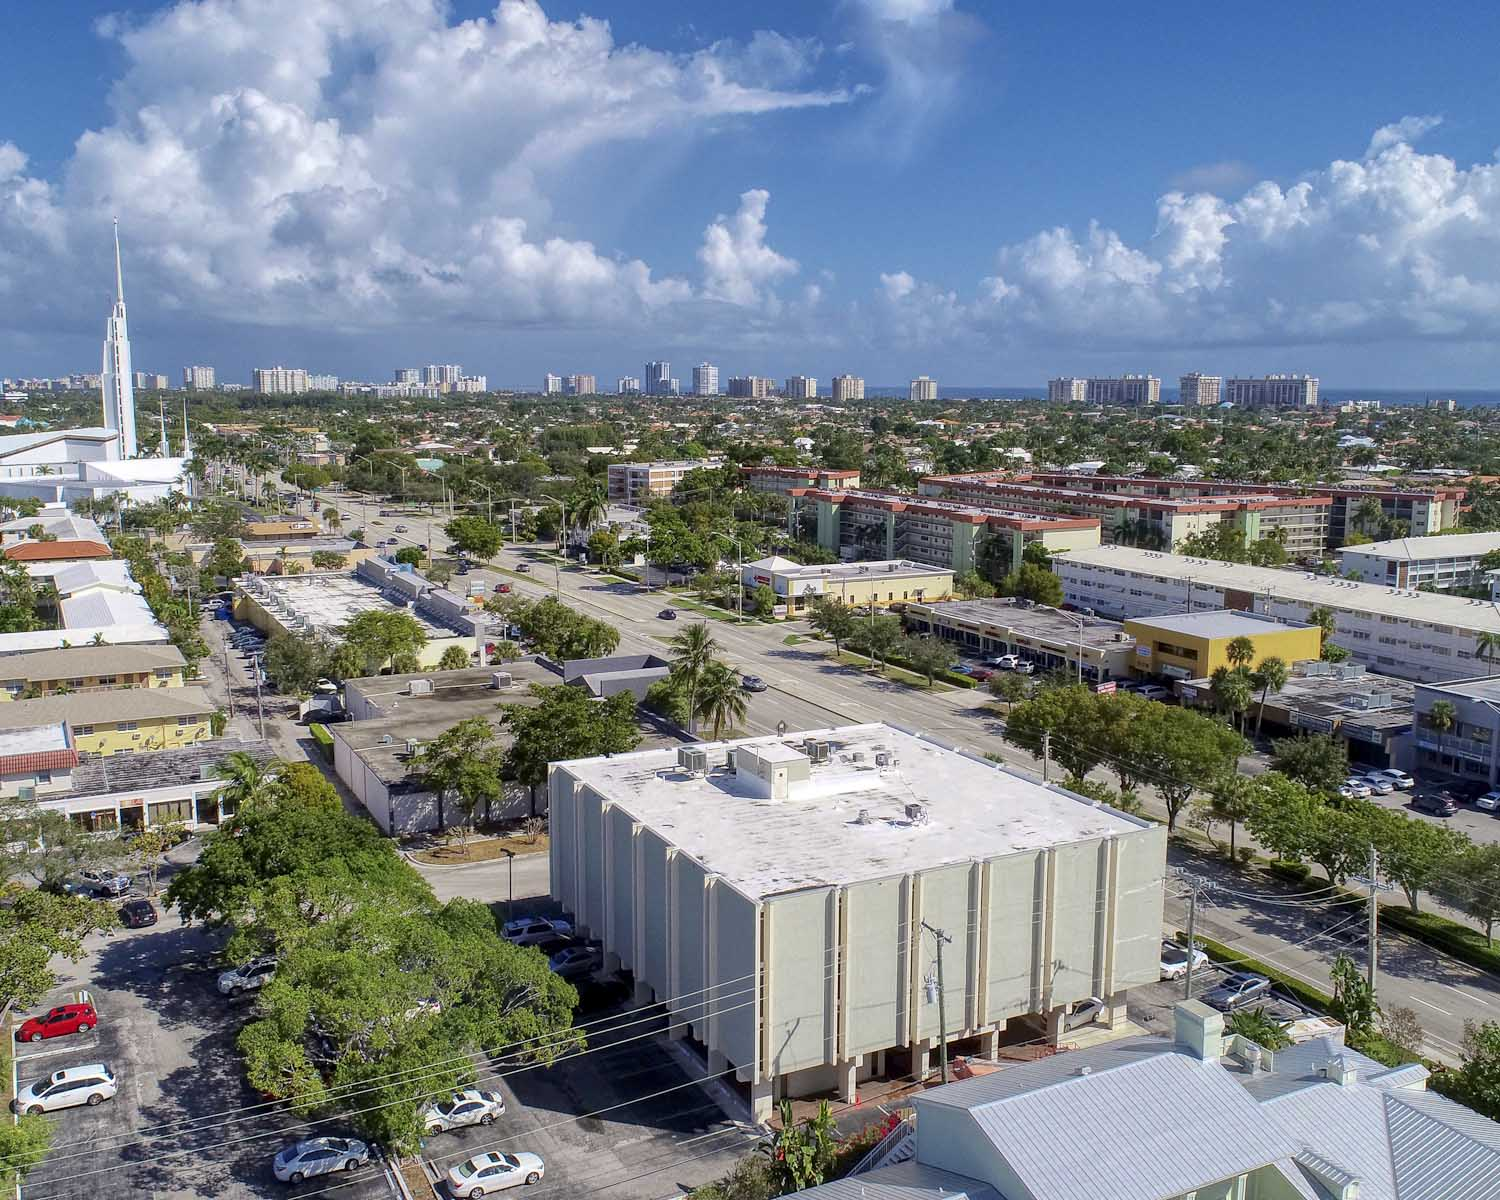 Fort Lauderdale detox center image 15 enjoy the fresh intracoastal air